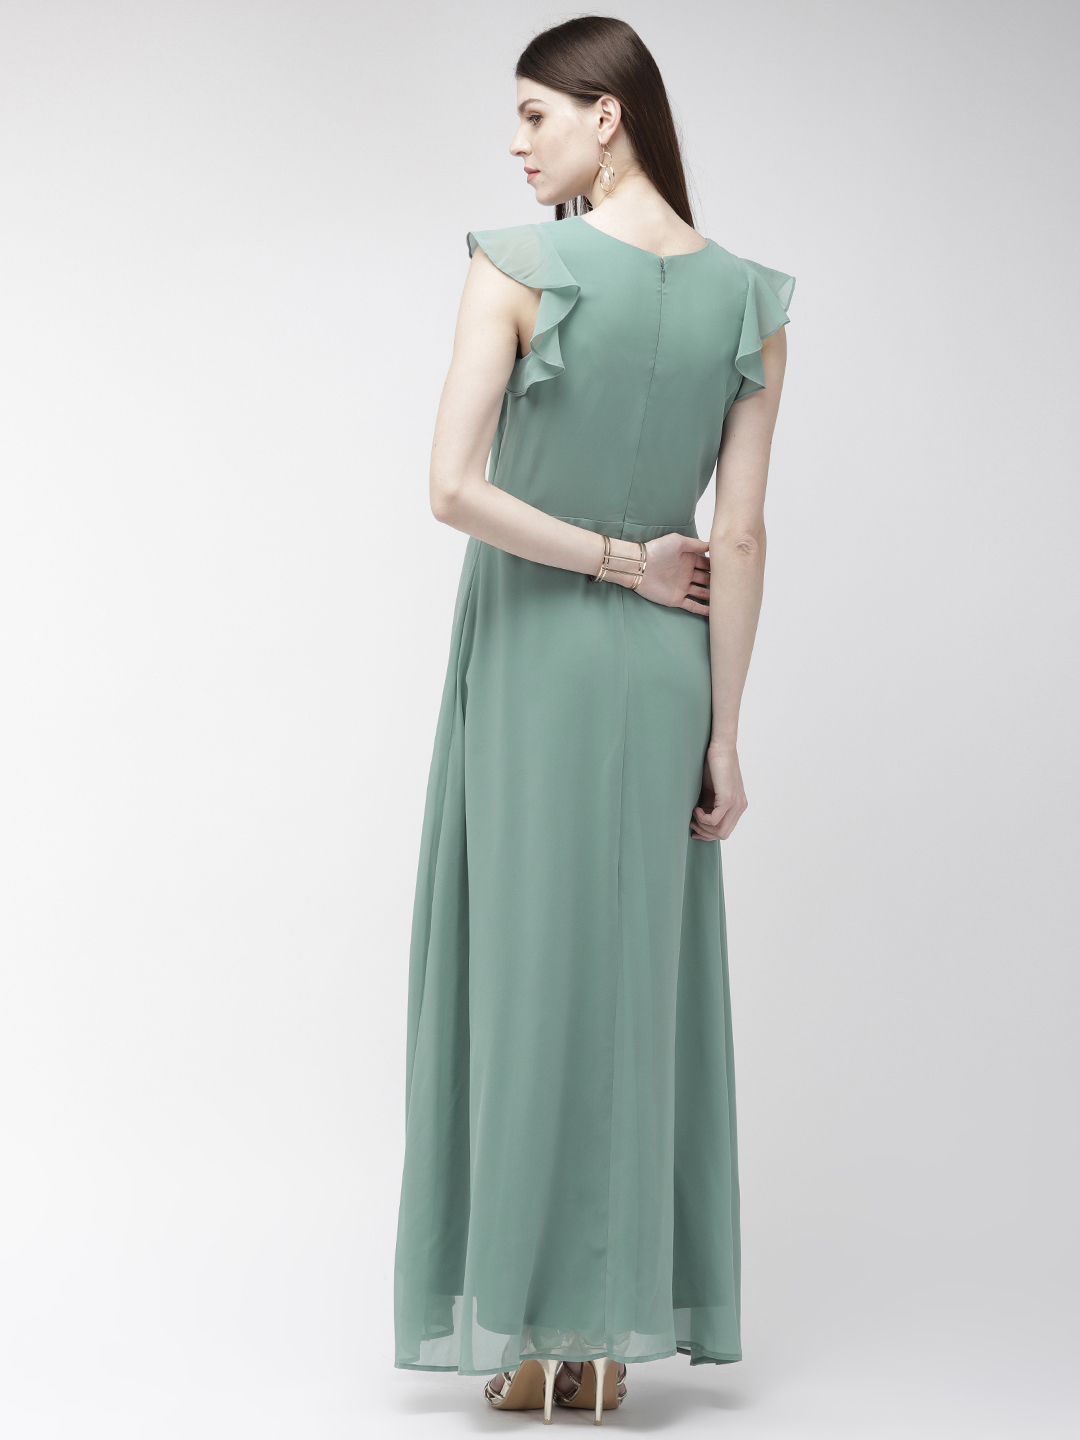 Dresses-The New Flair Maxi Dress3